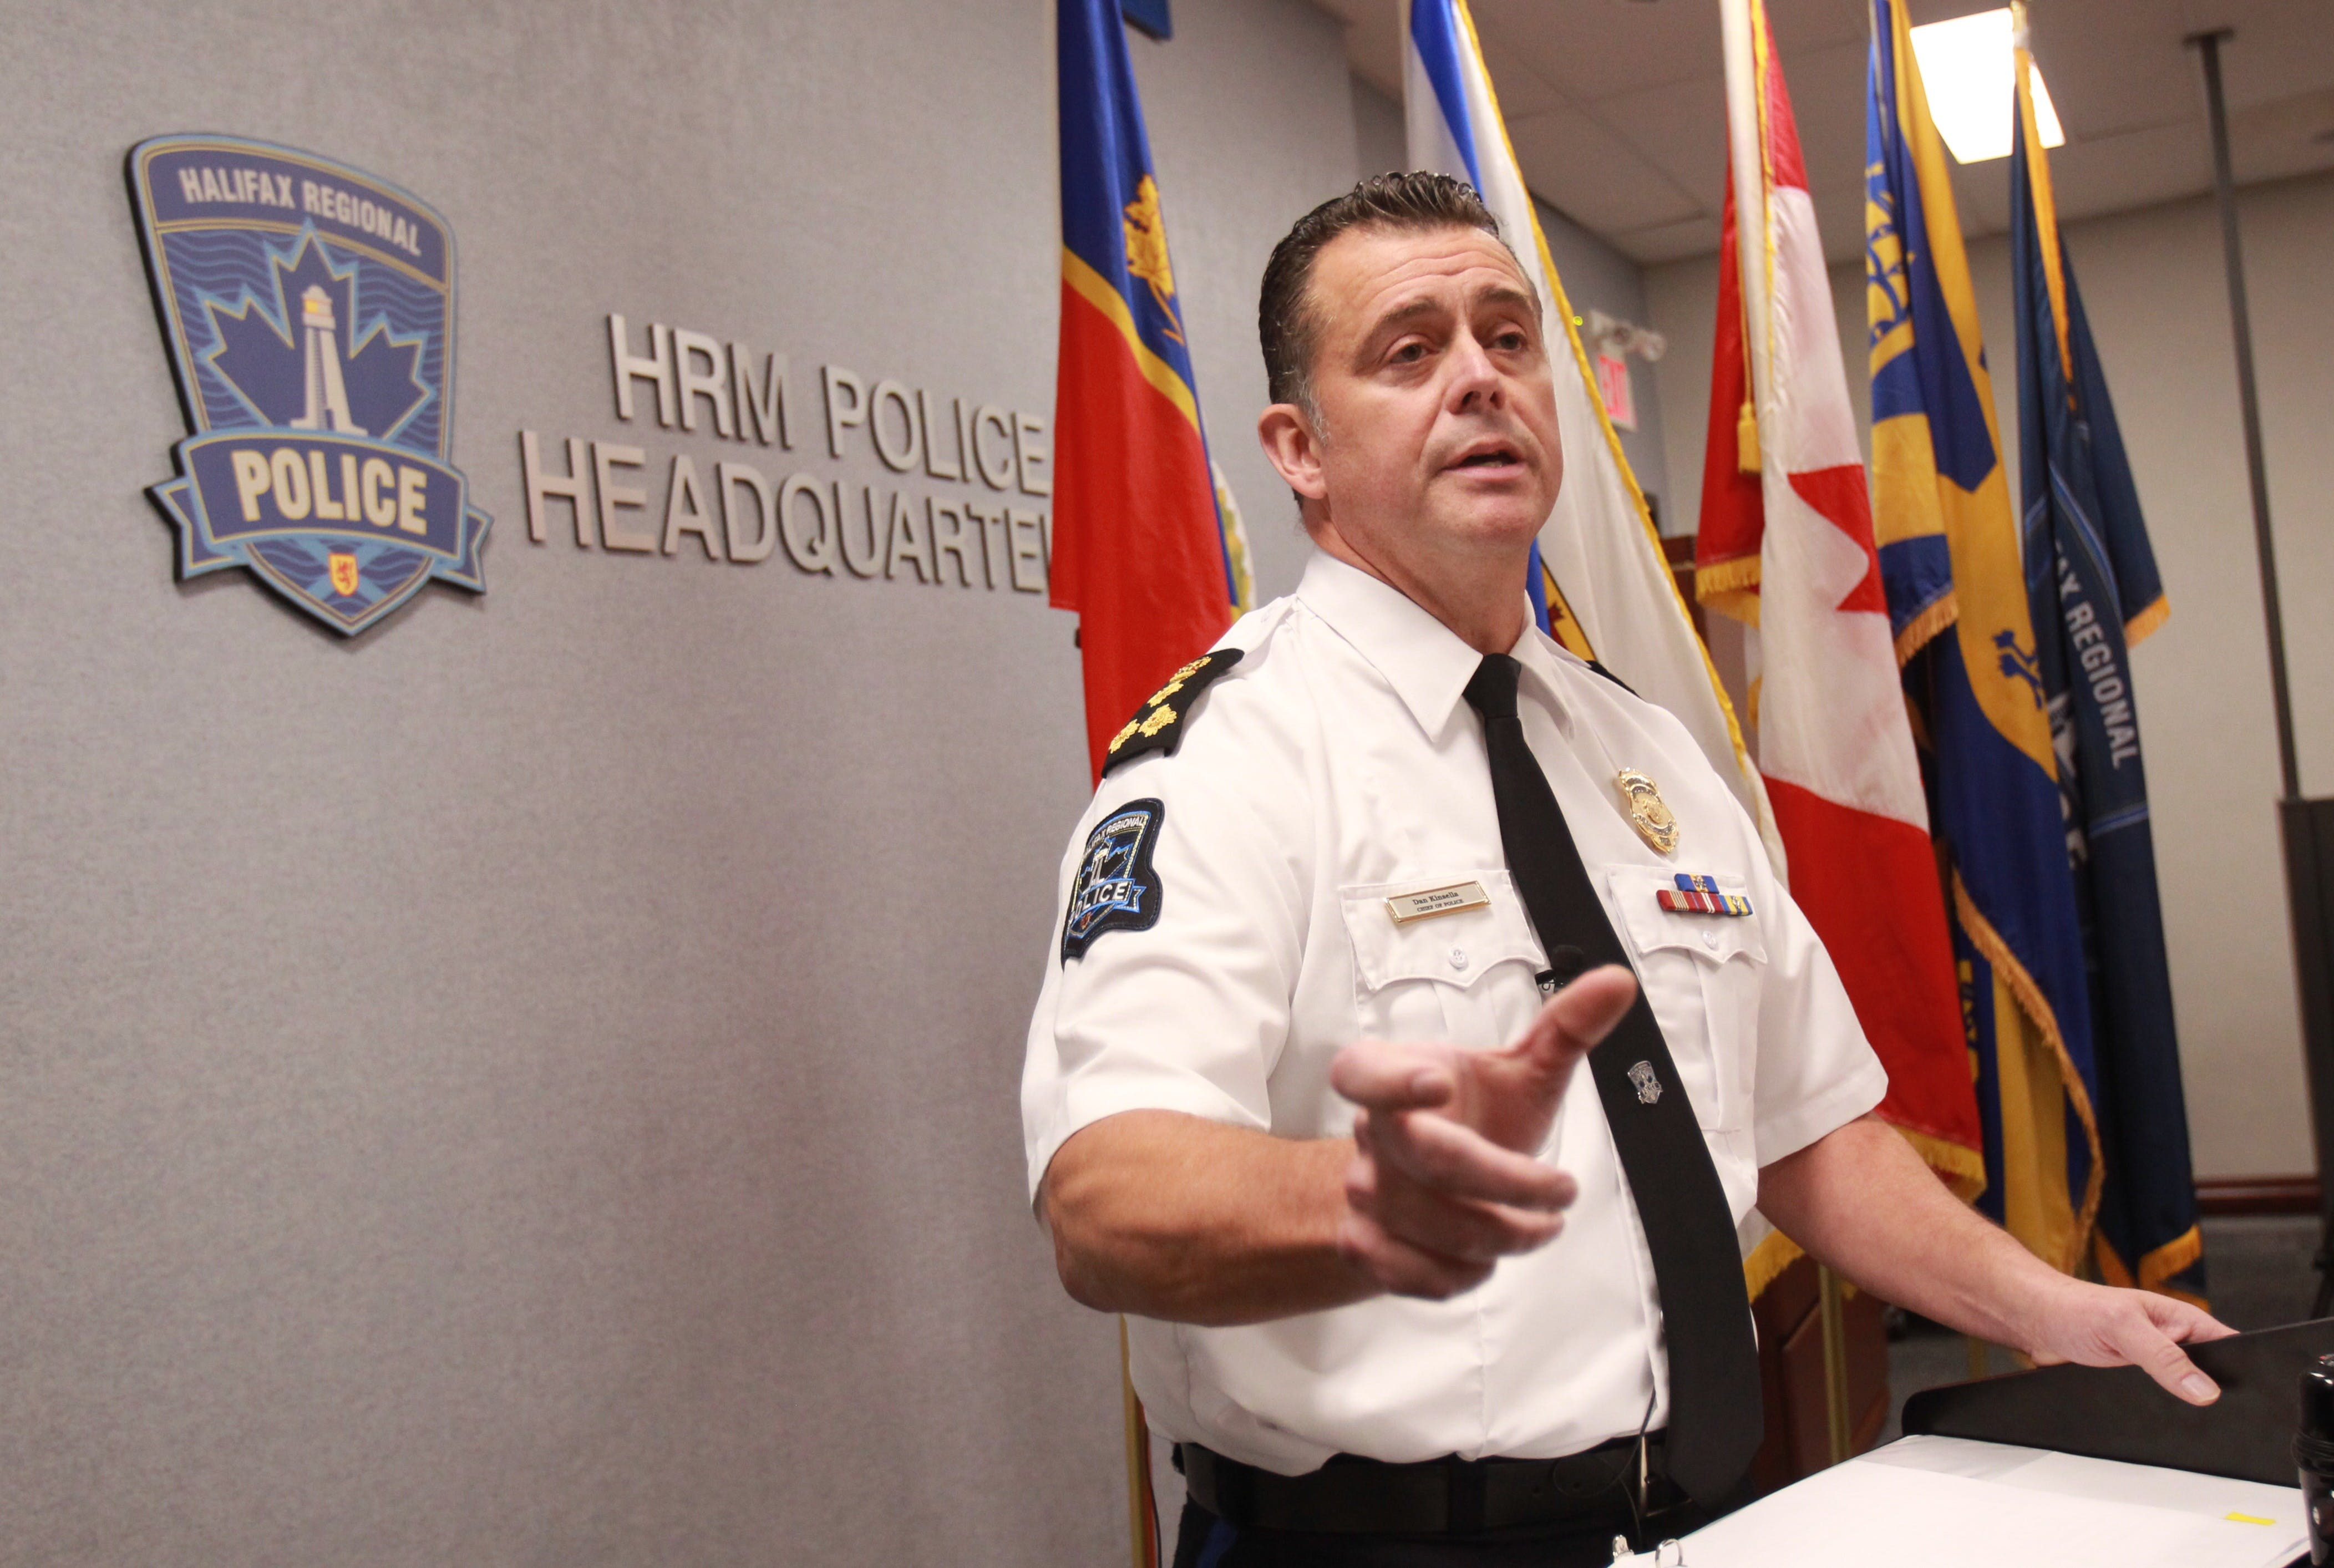 Halifax Regional Police Chief Dan Kinsella speaks to the media Thursday, Oct. 17, 2019, about charges laid against Const. Jennifer McPhee.